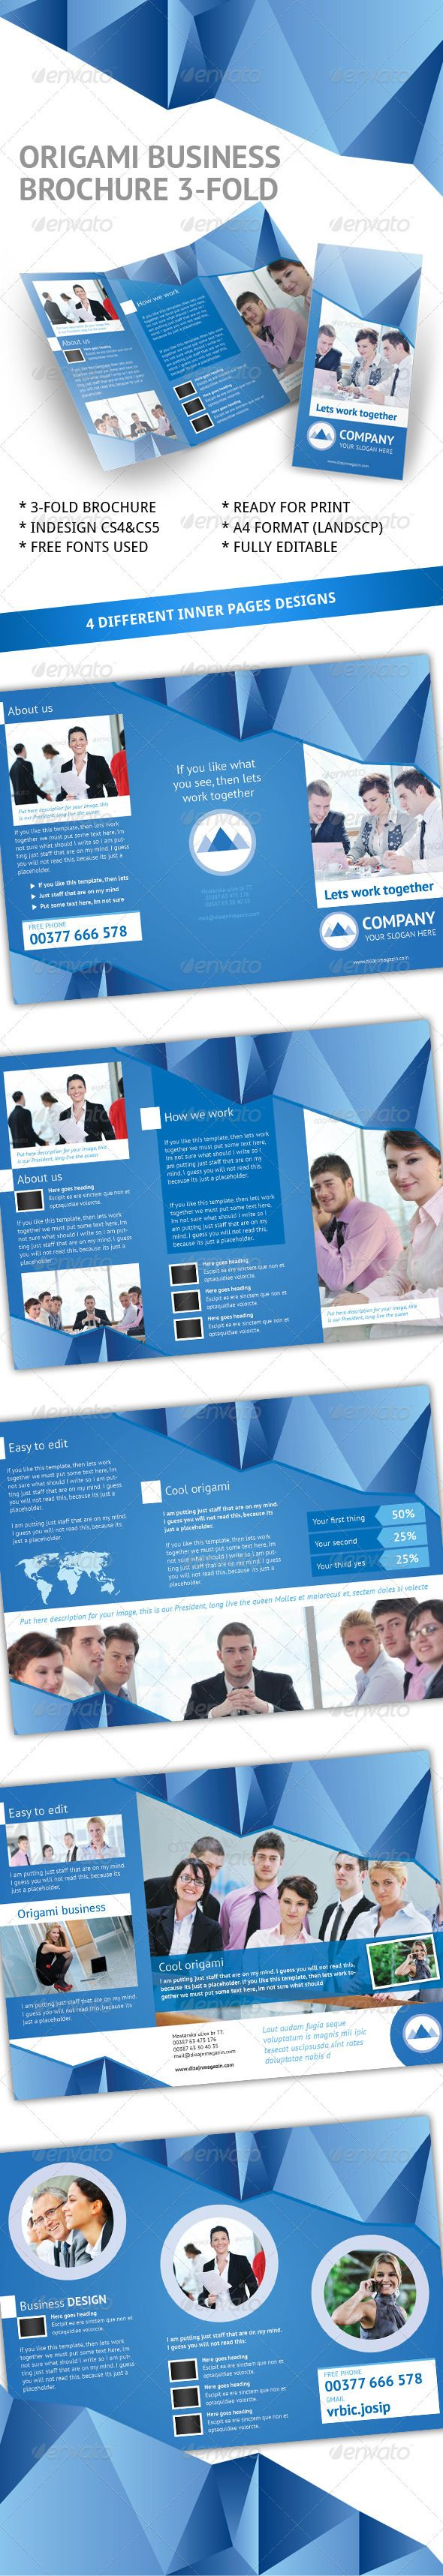 Business origami 3 fold brochure indesign template for Free indesign brochure templates cs5